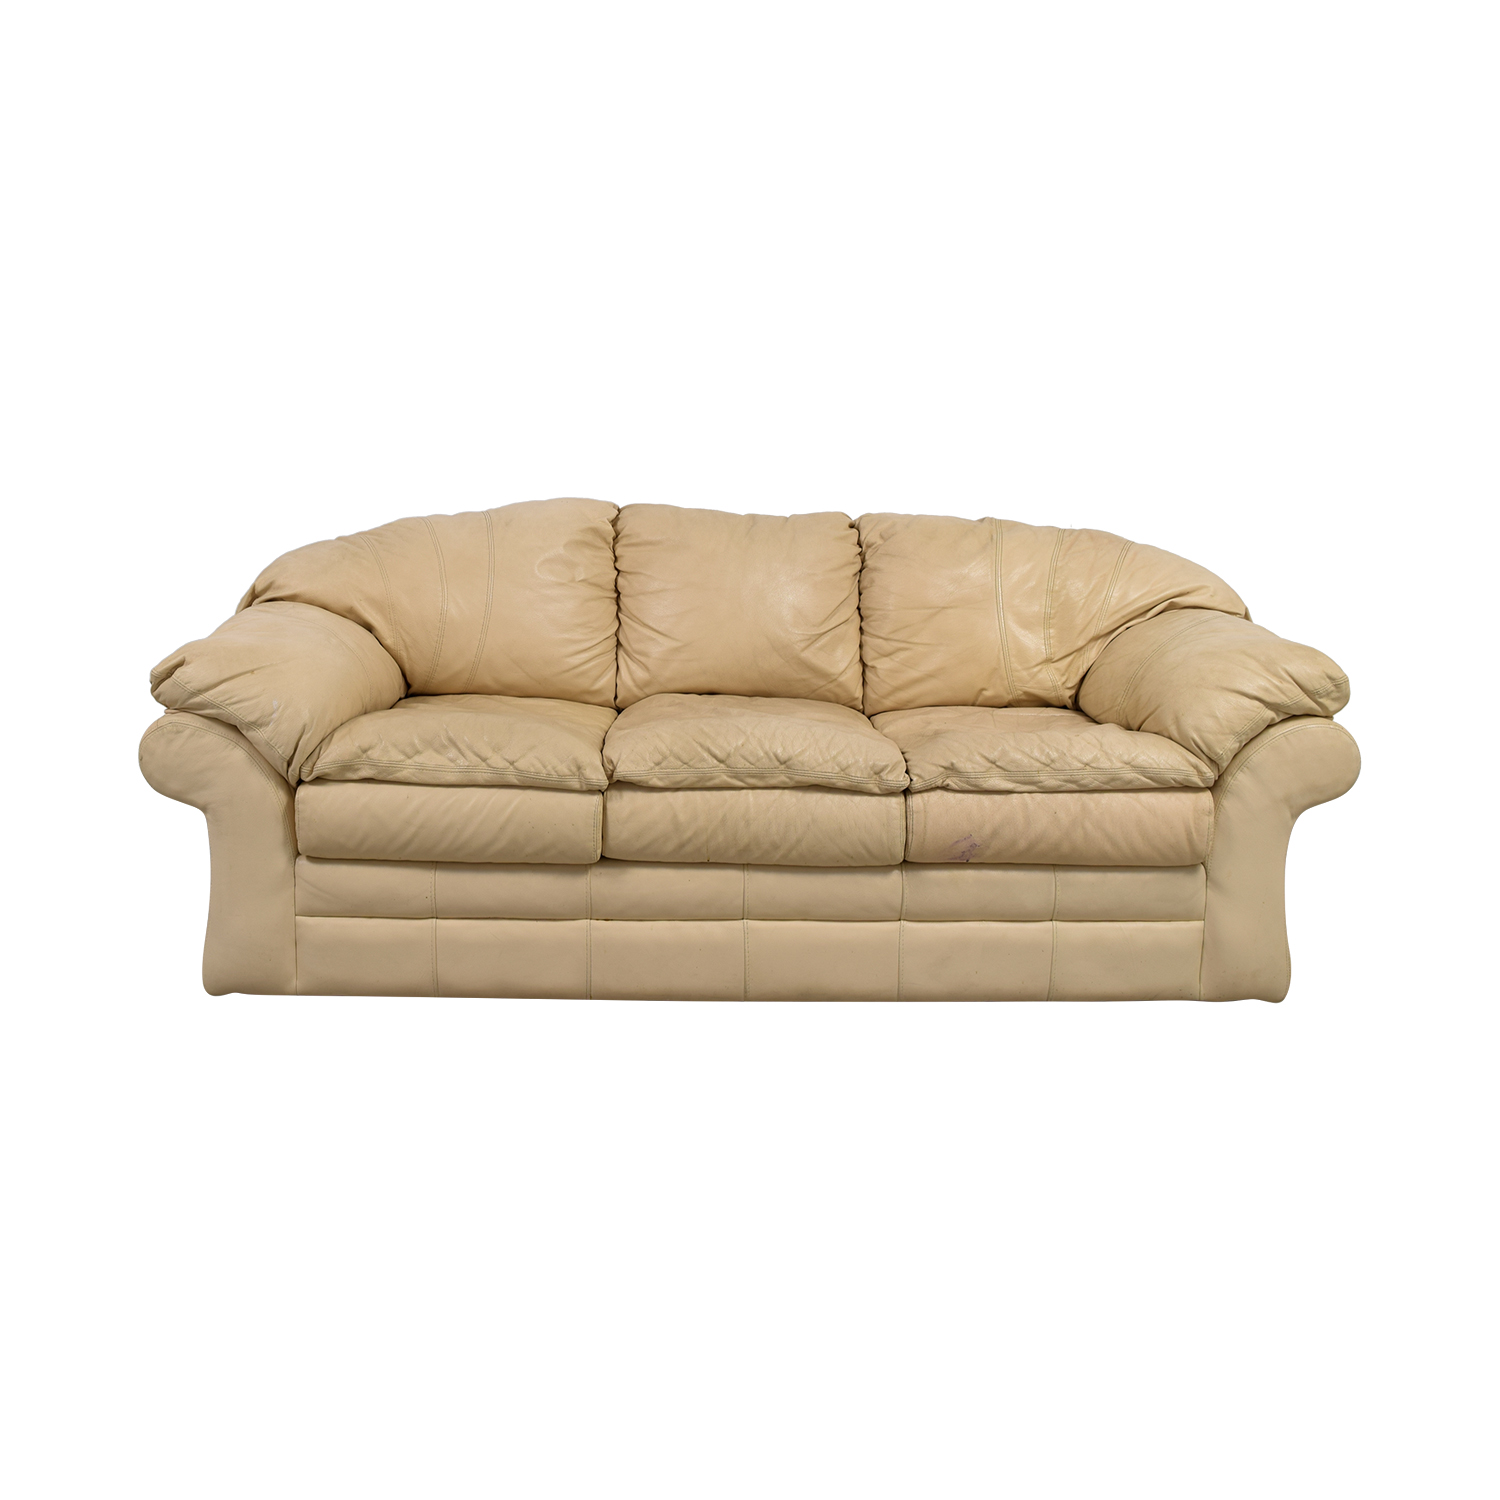 buy Klaussner Leather Sofa Klaussner Sofas